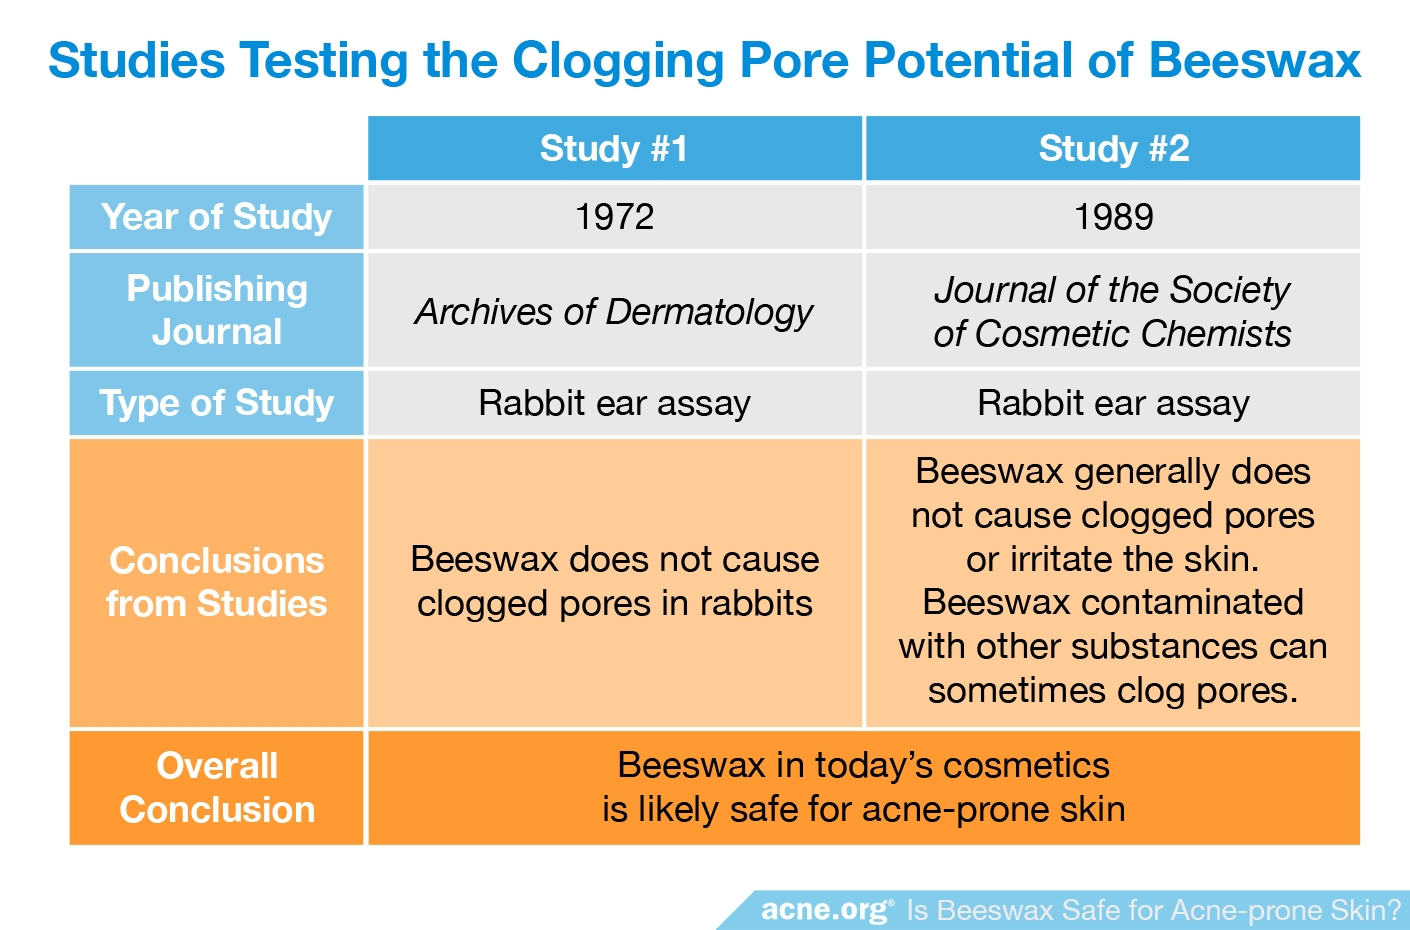 Studies Testing the Pore-clogging Potential of Beeswax